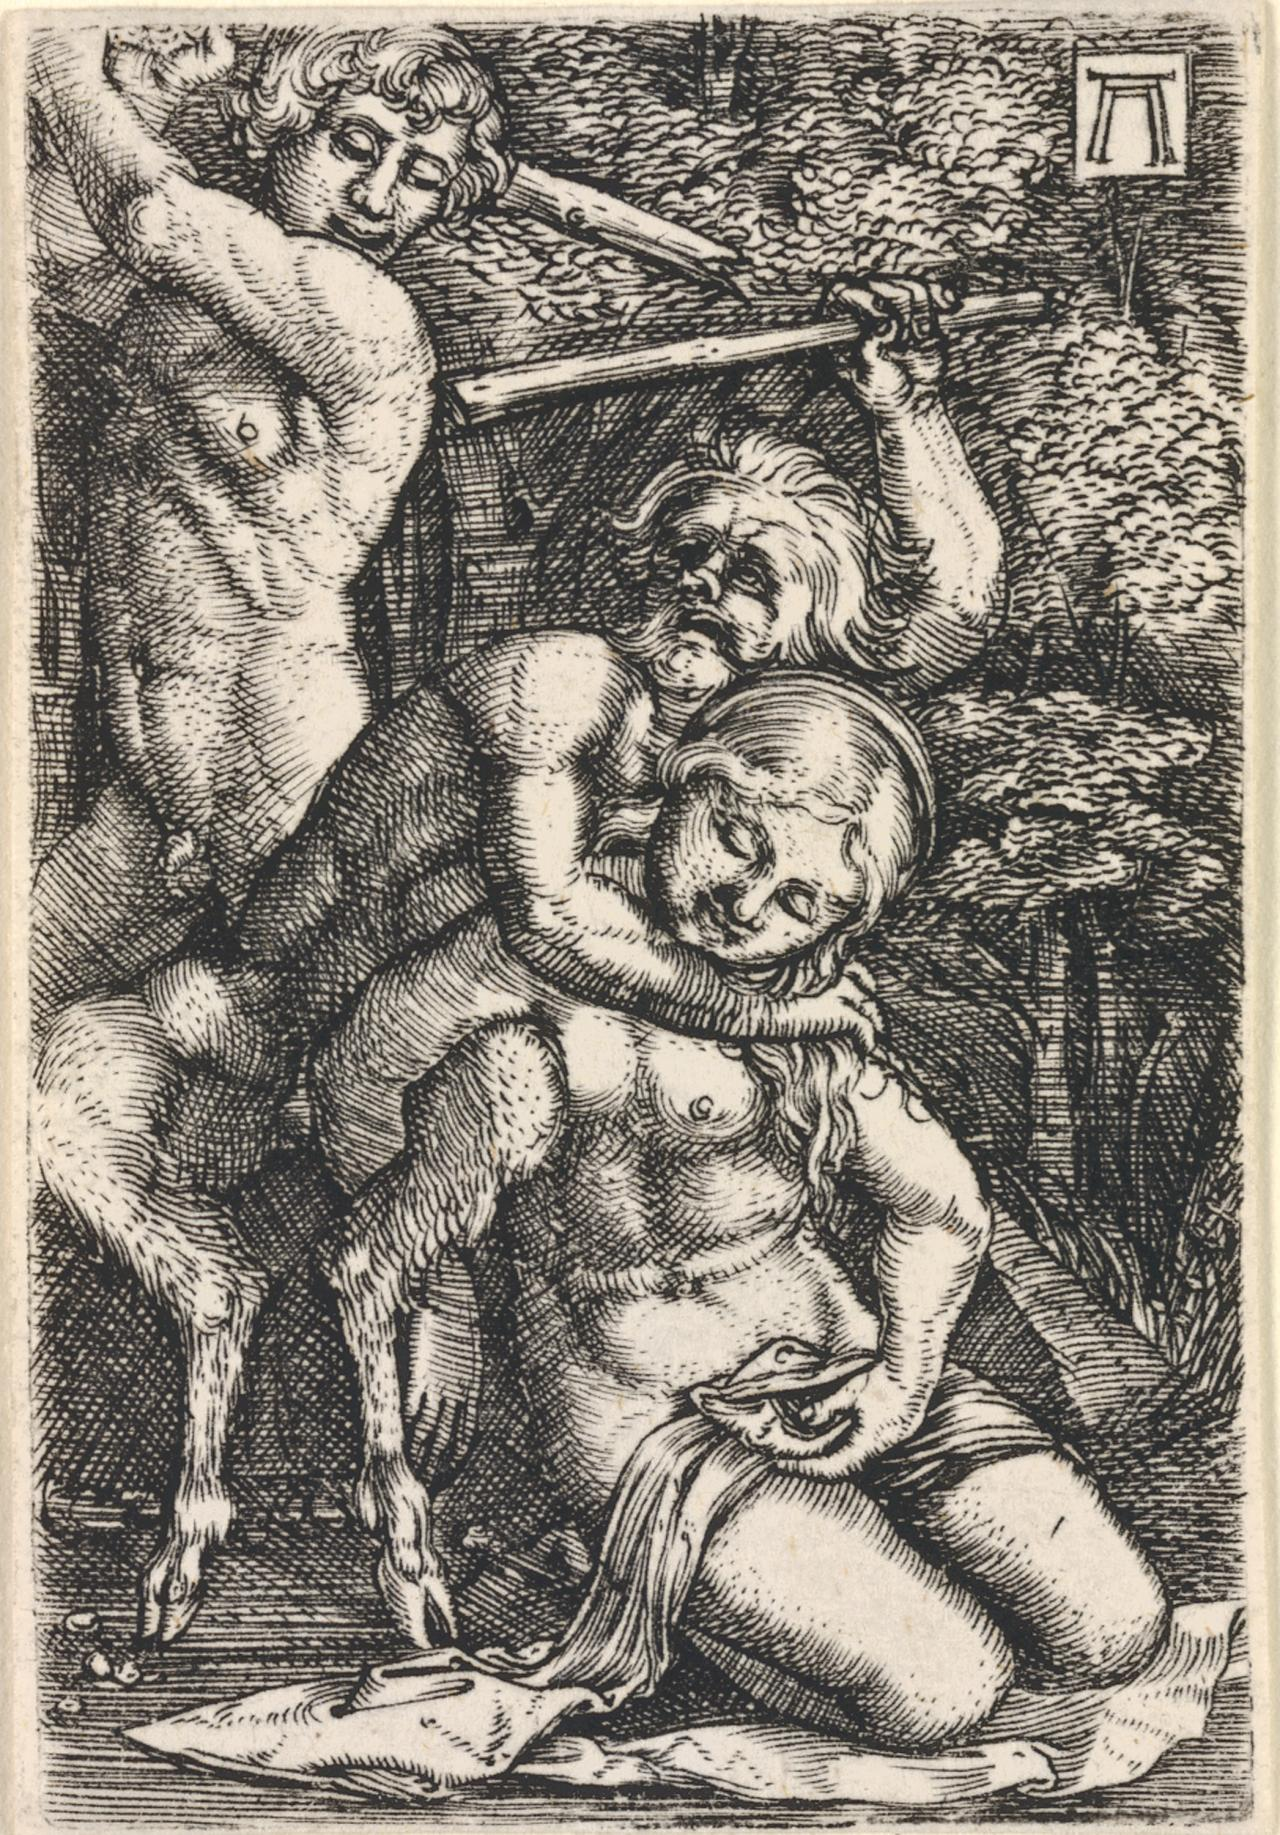 Satyr attacking a nymph, himself being attacked